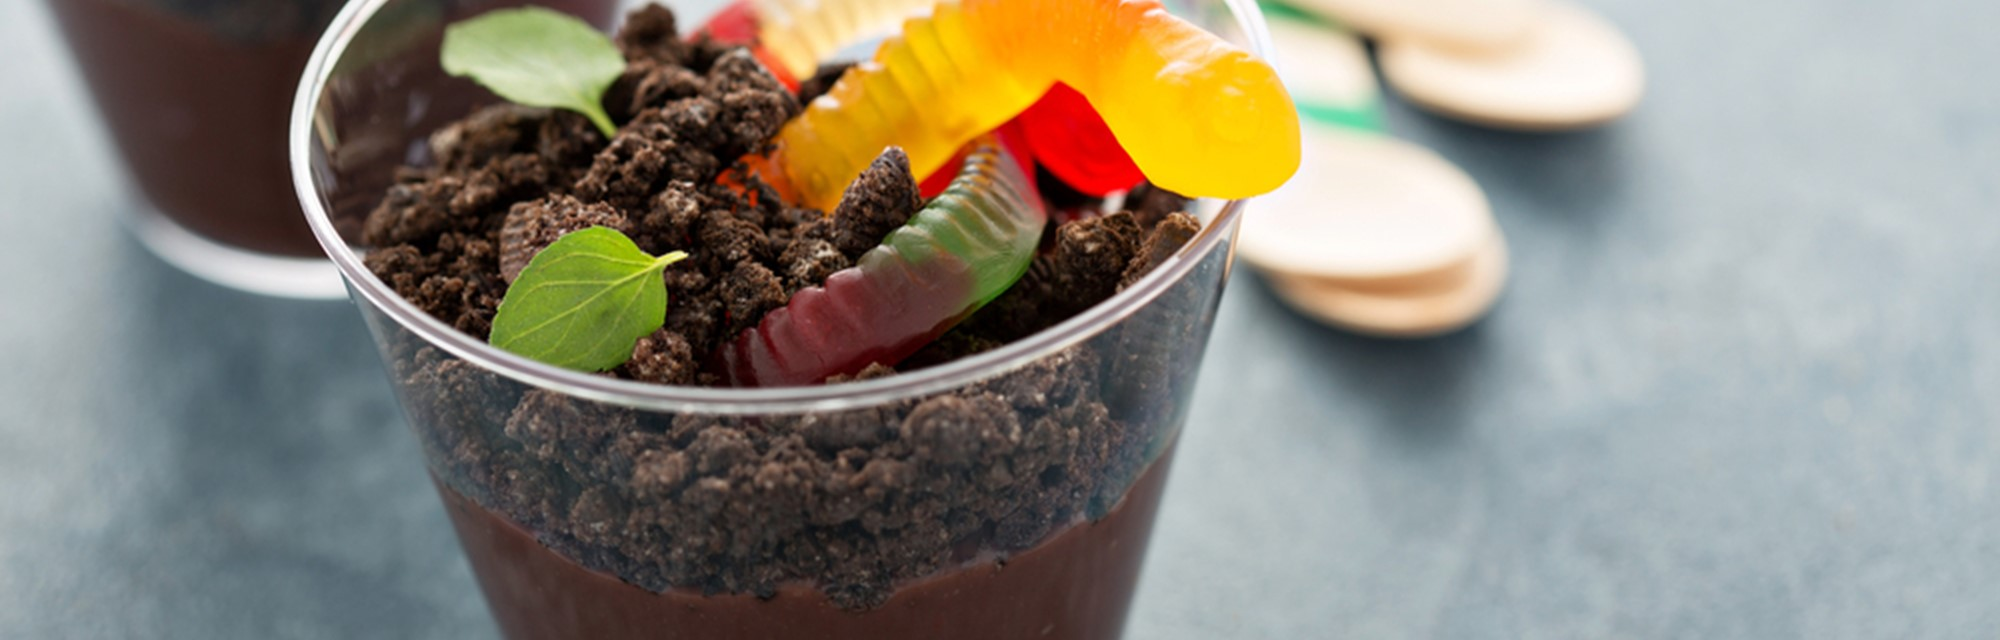 Header - Jelly Worms In Mud